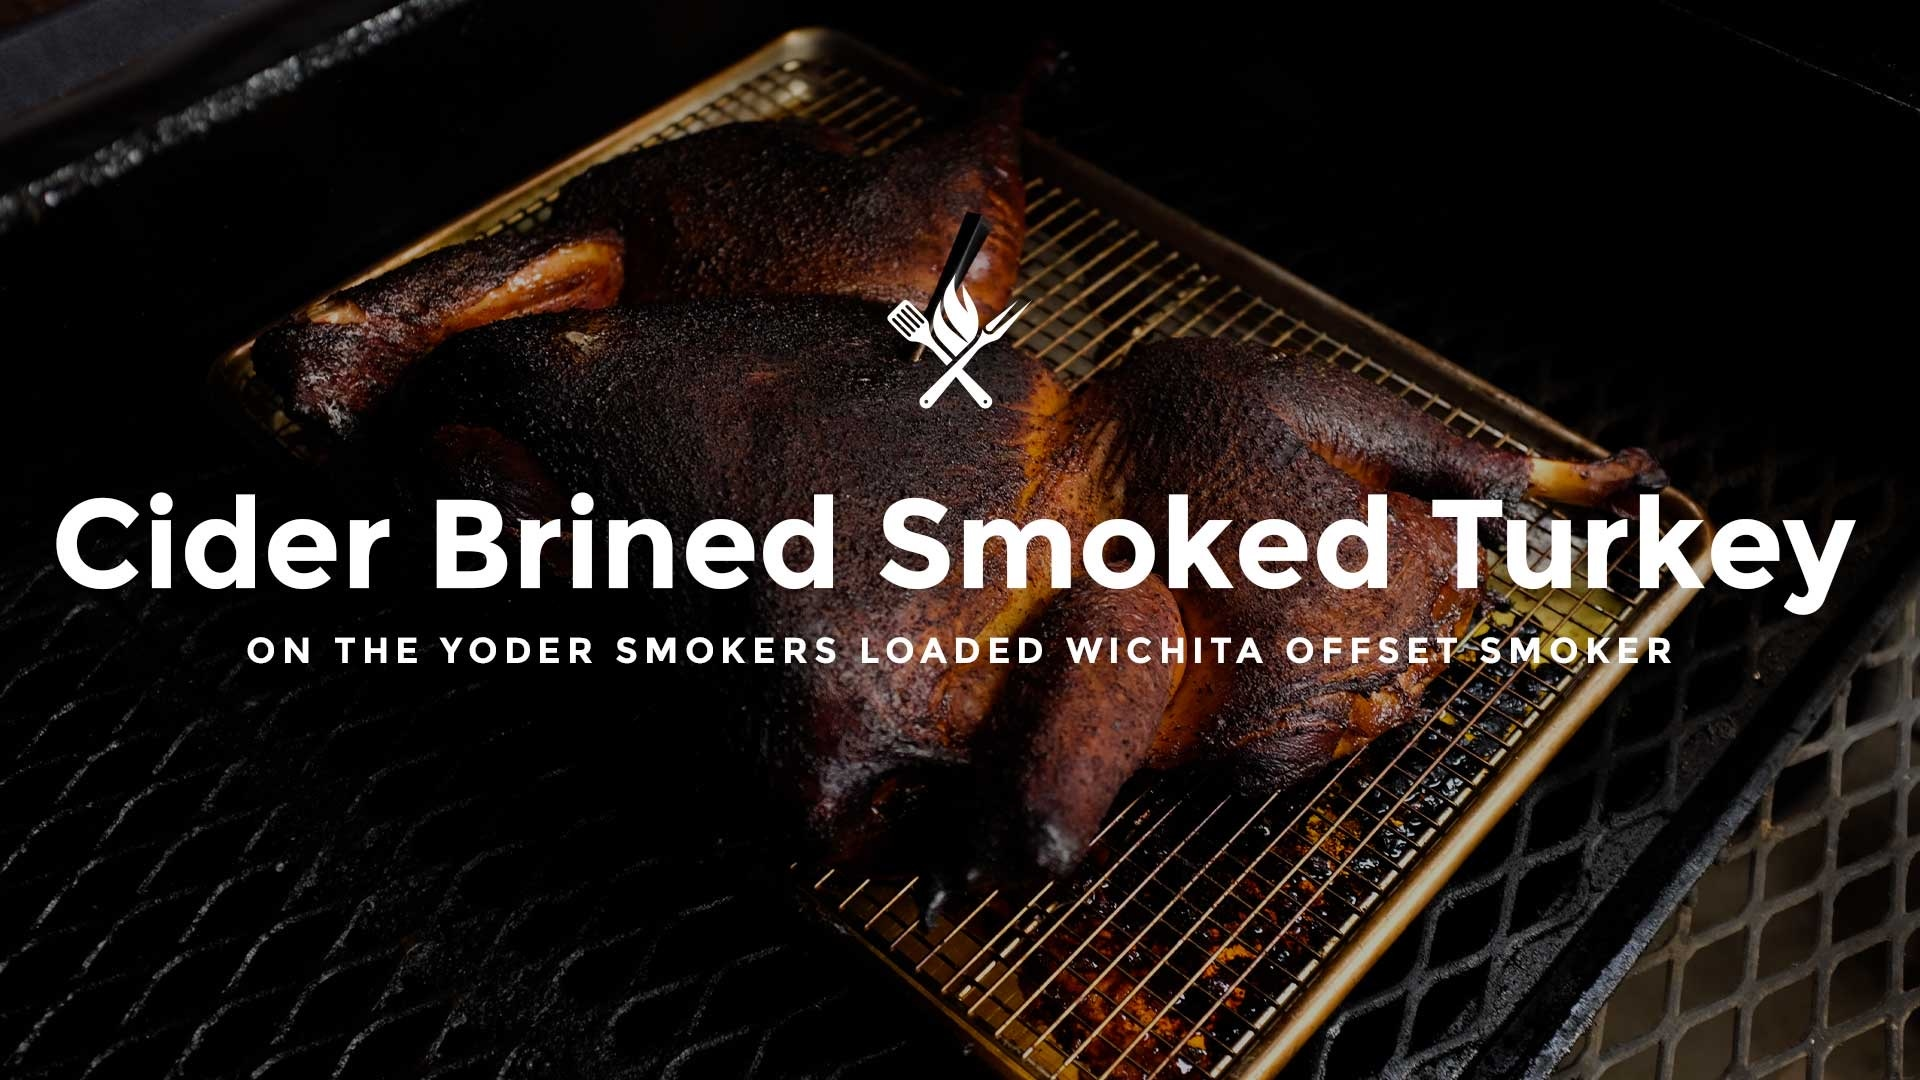 How to make Cider Brined Barbecue Turkey on the smoker